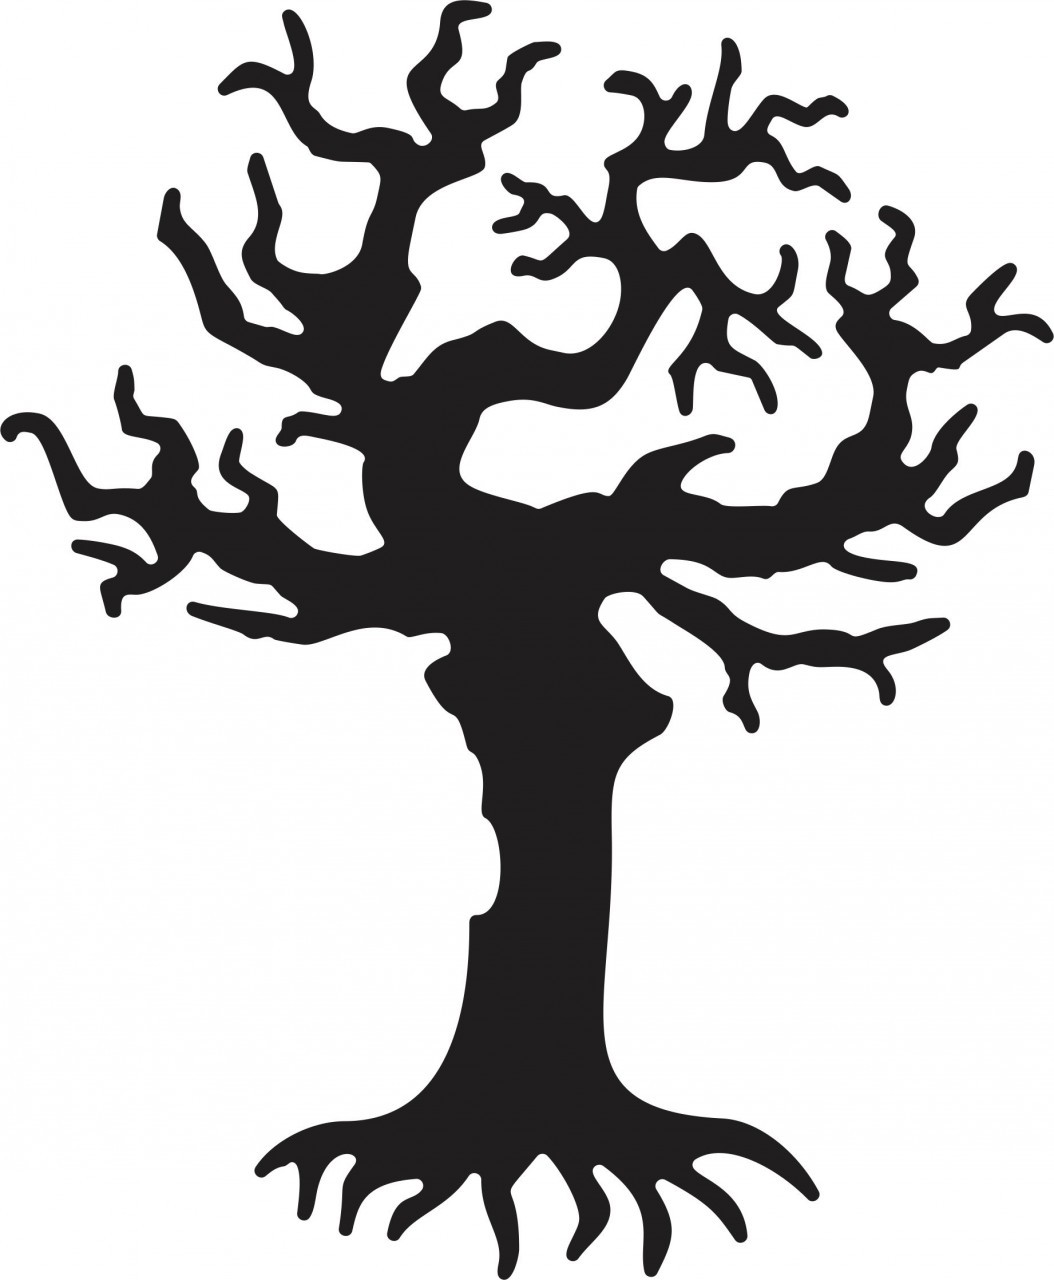 1054x1280 Creepy Trees Silhouettes